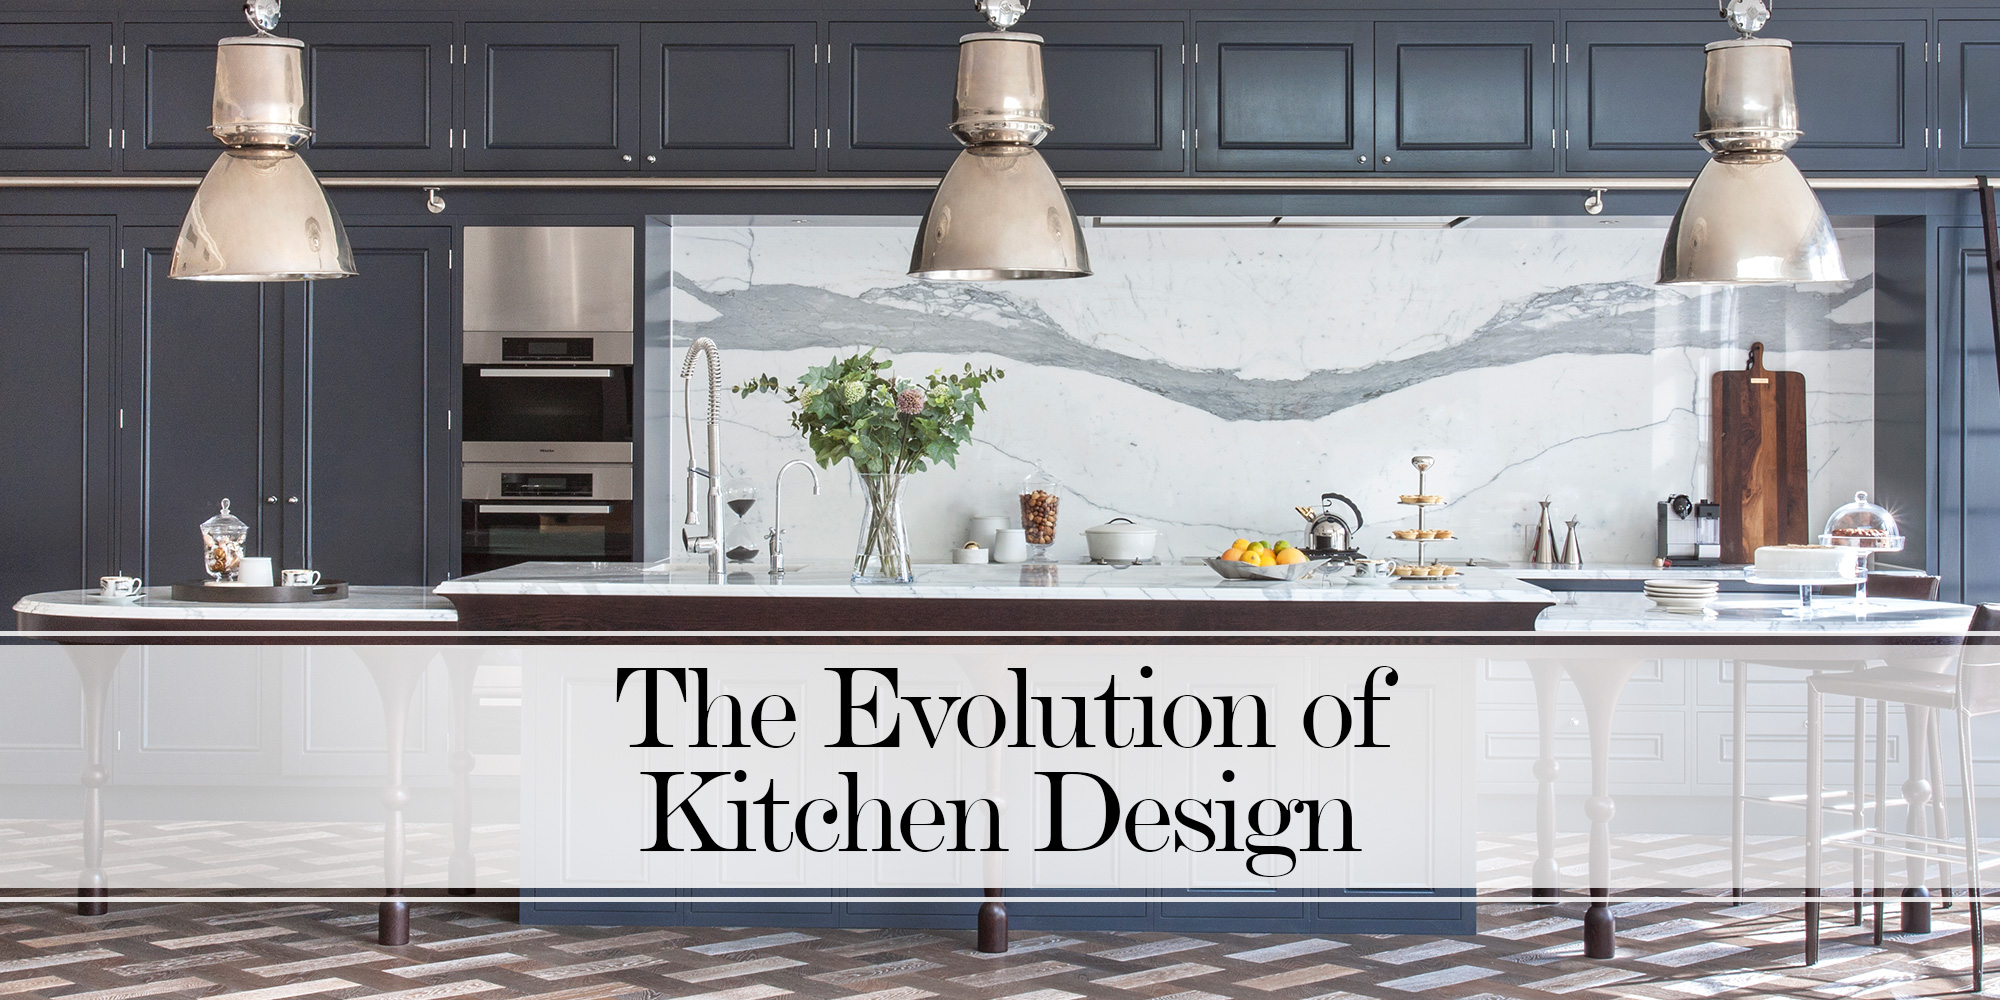 Whatu0027s Cooking? The Evolution Of Kitchen Design